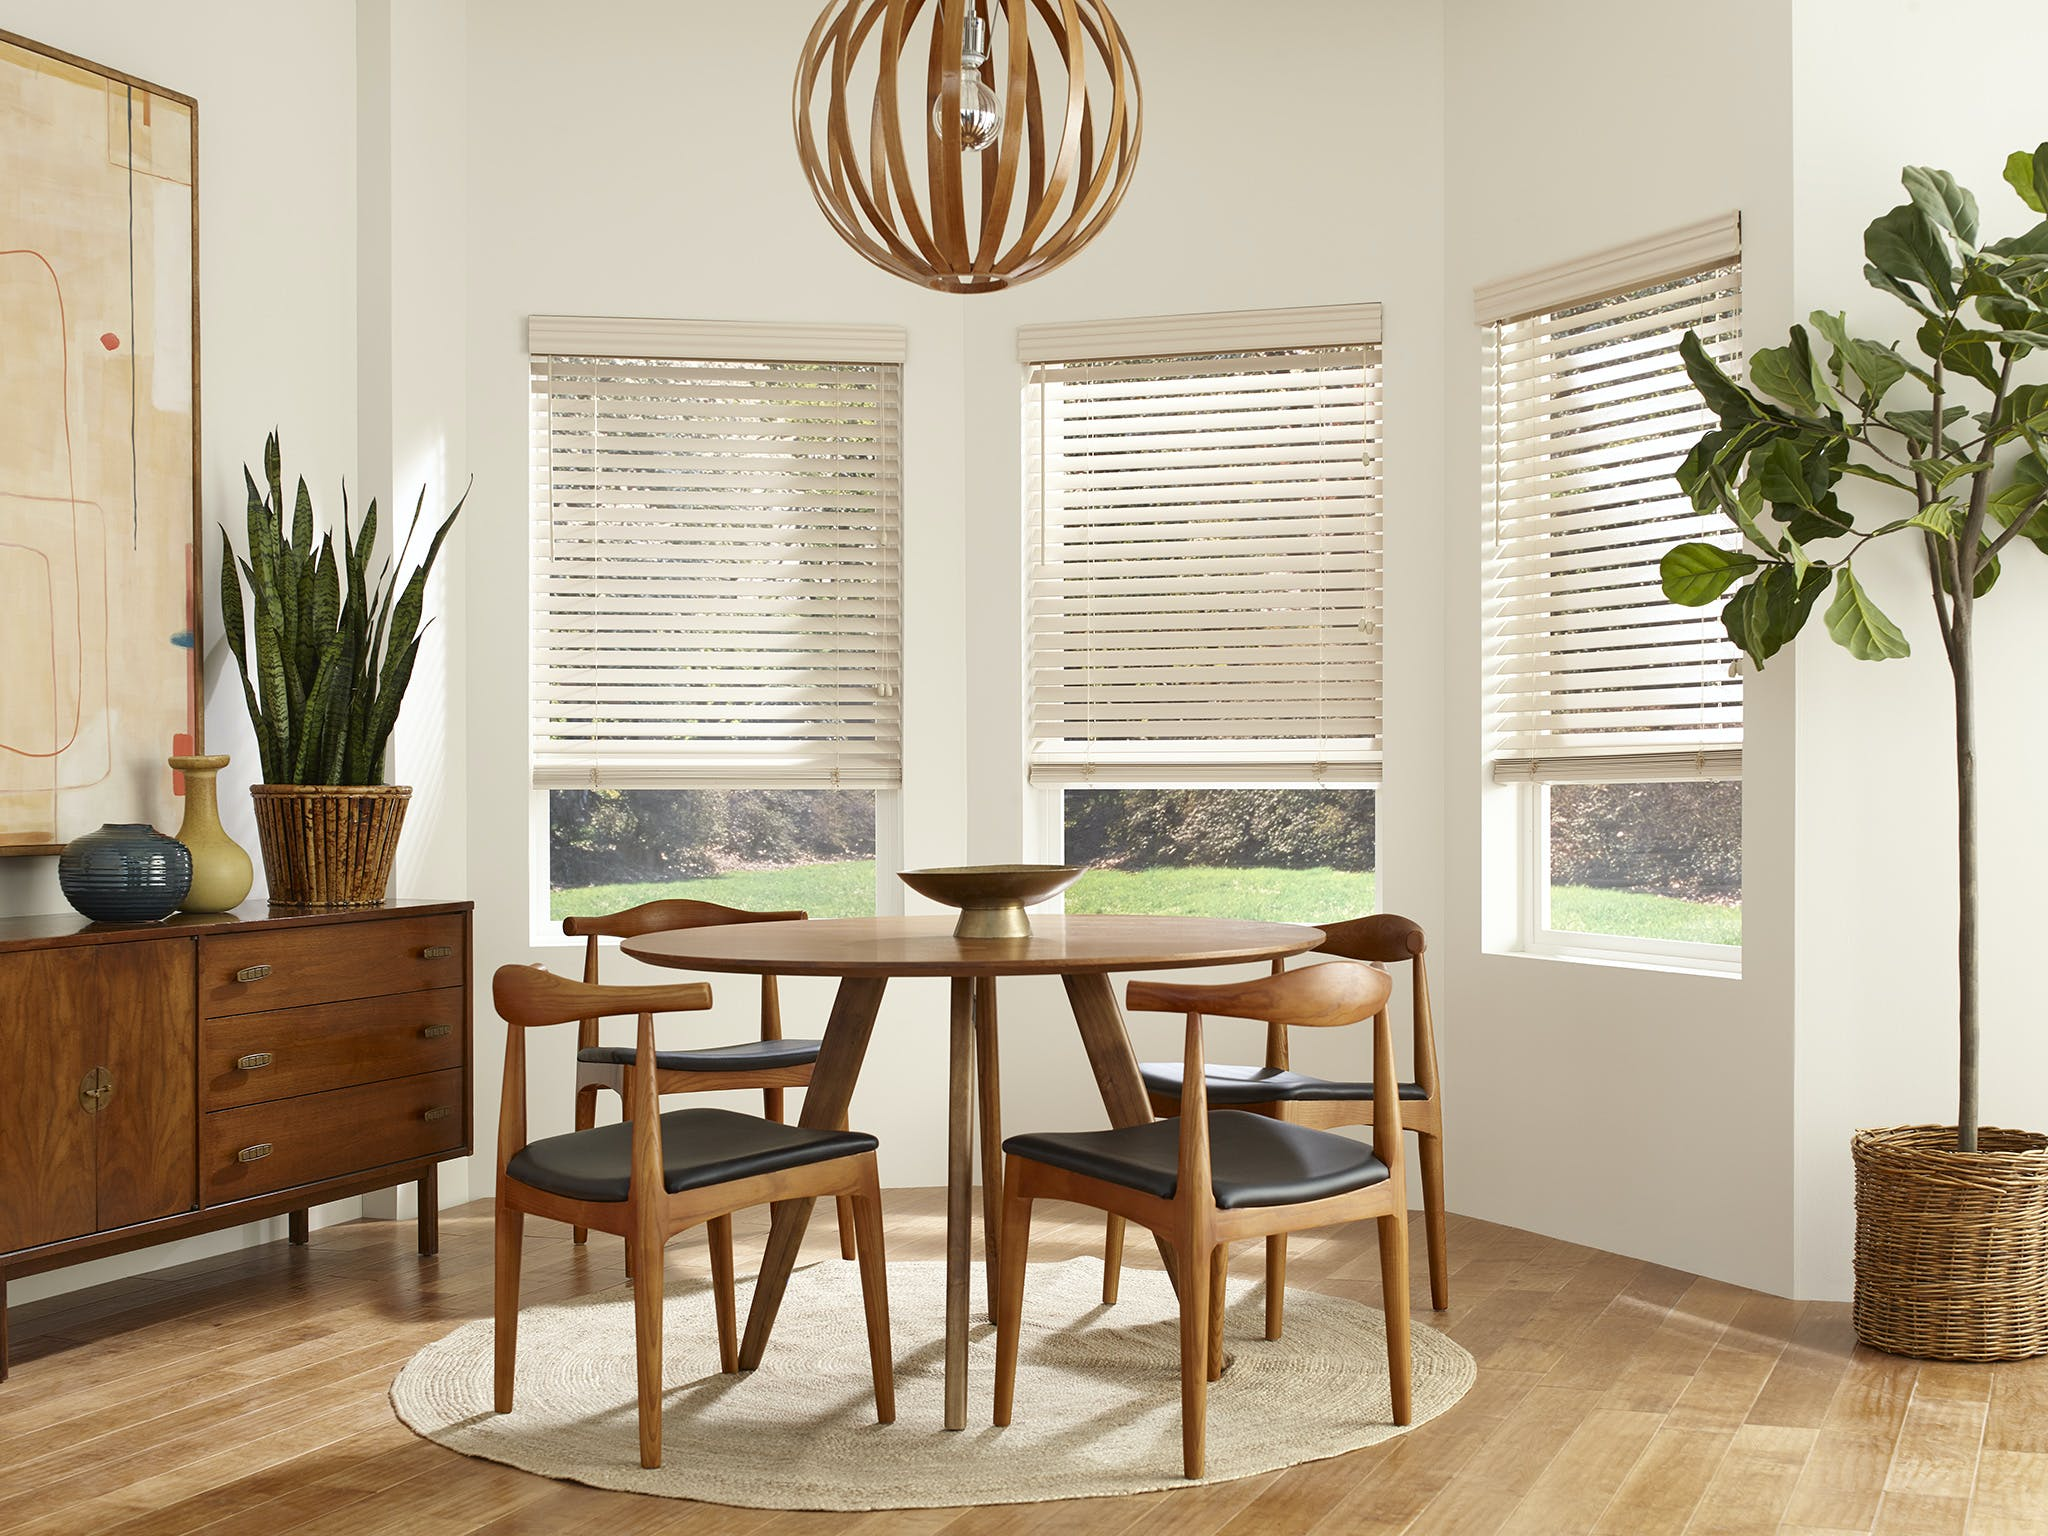 Mid-century modern themed dining room with wood furniture and off-white wood blinds in the bay window.